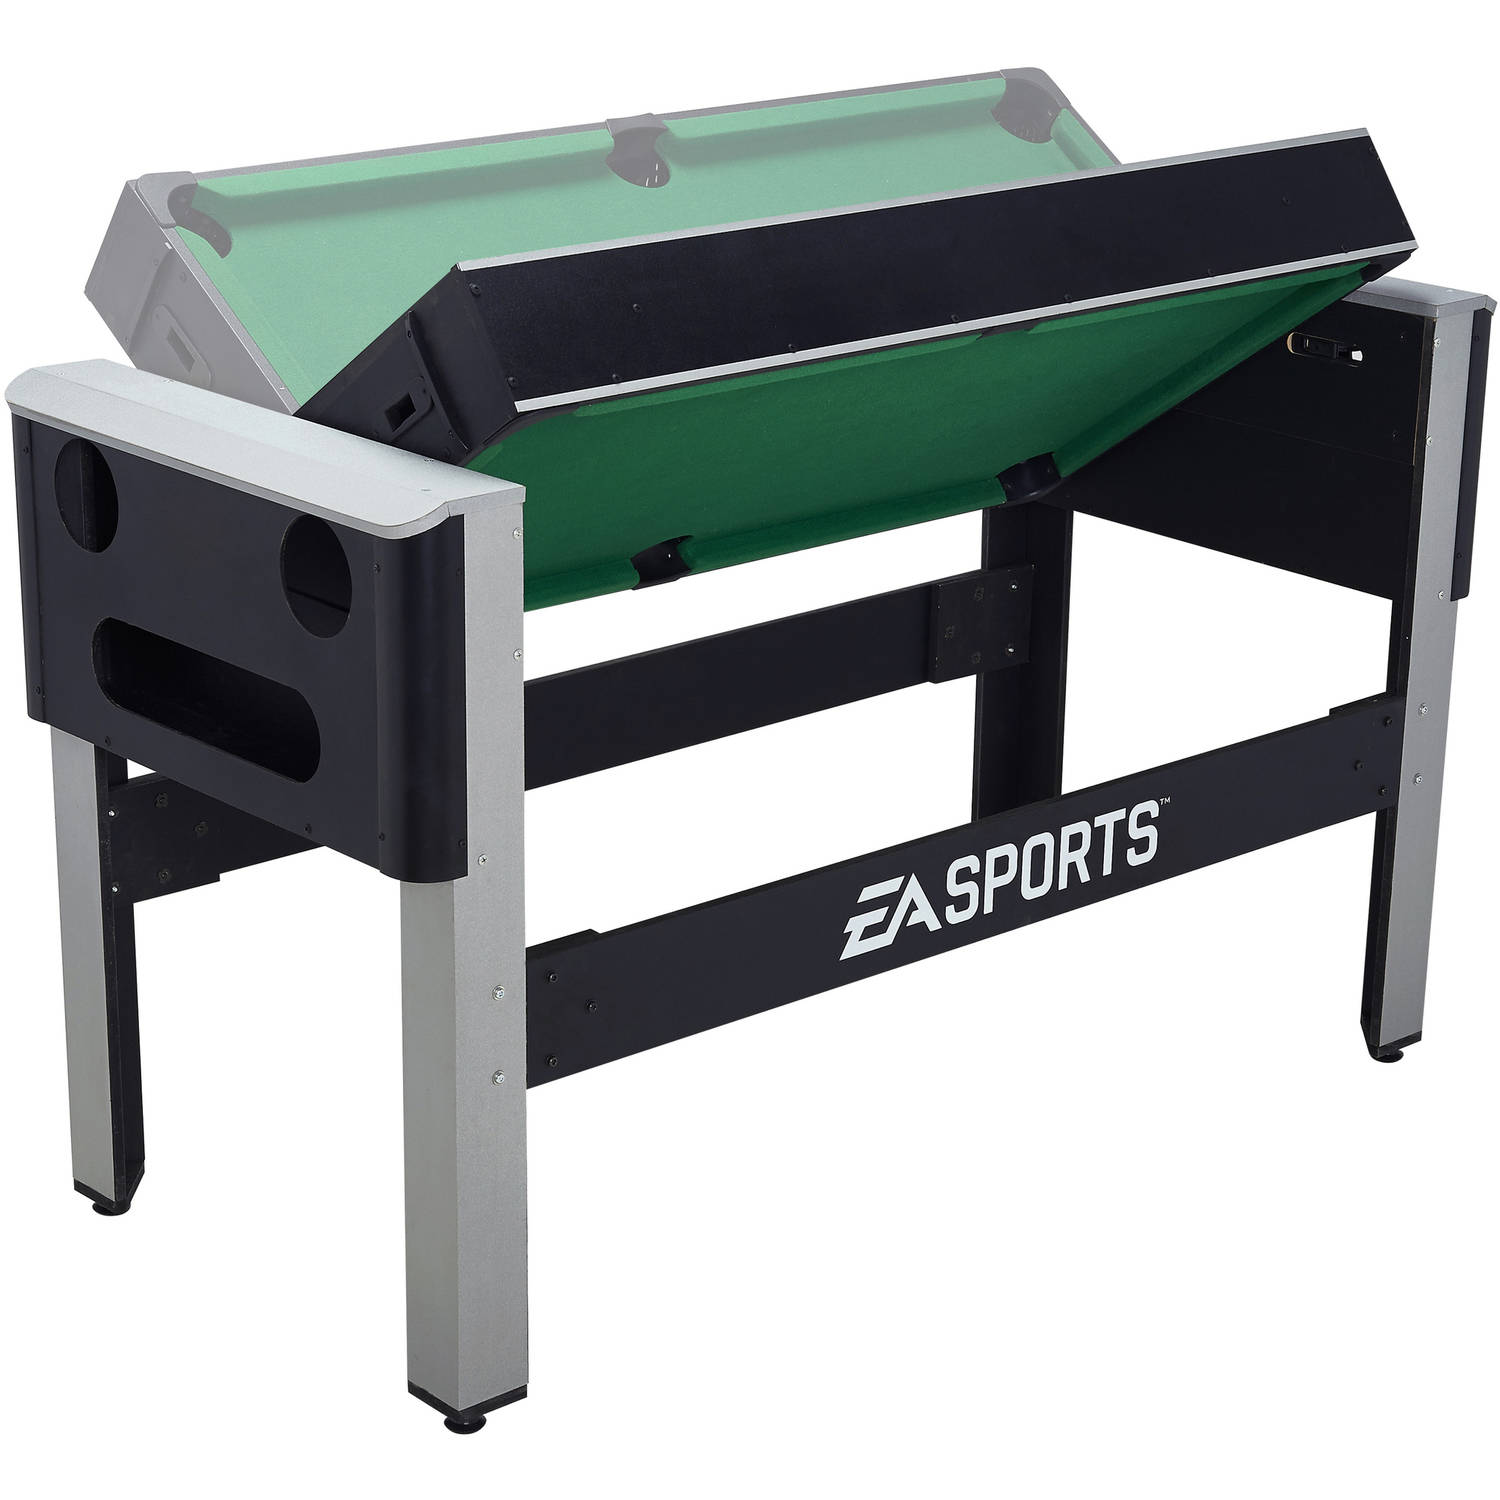 EA SPORTS 54 Inch 4 in 1 Swivel bo Table 4 Games with table